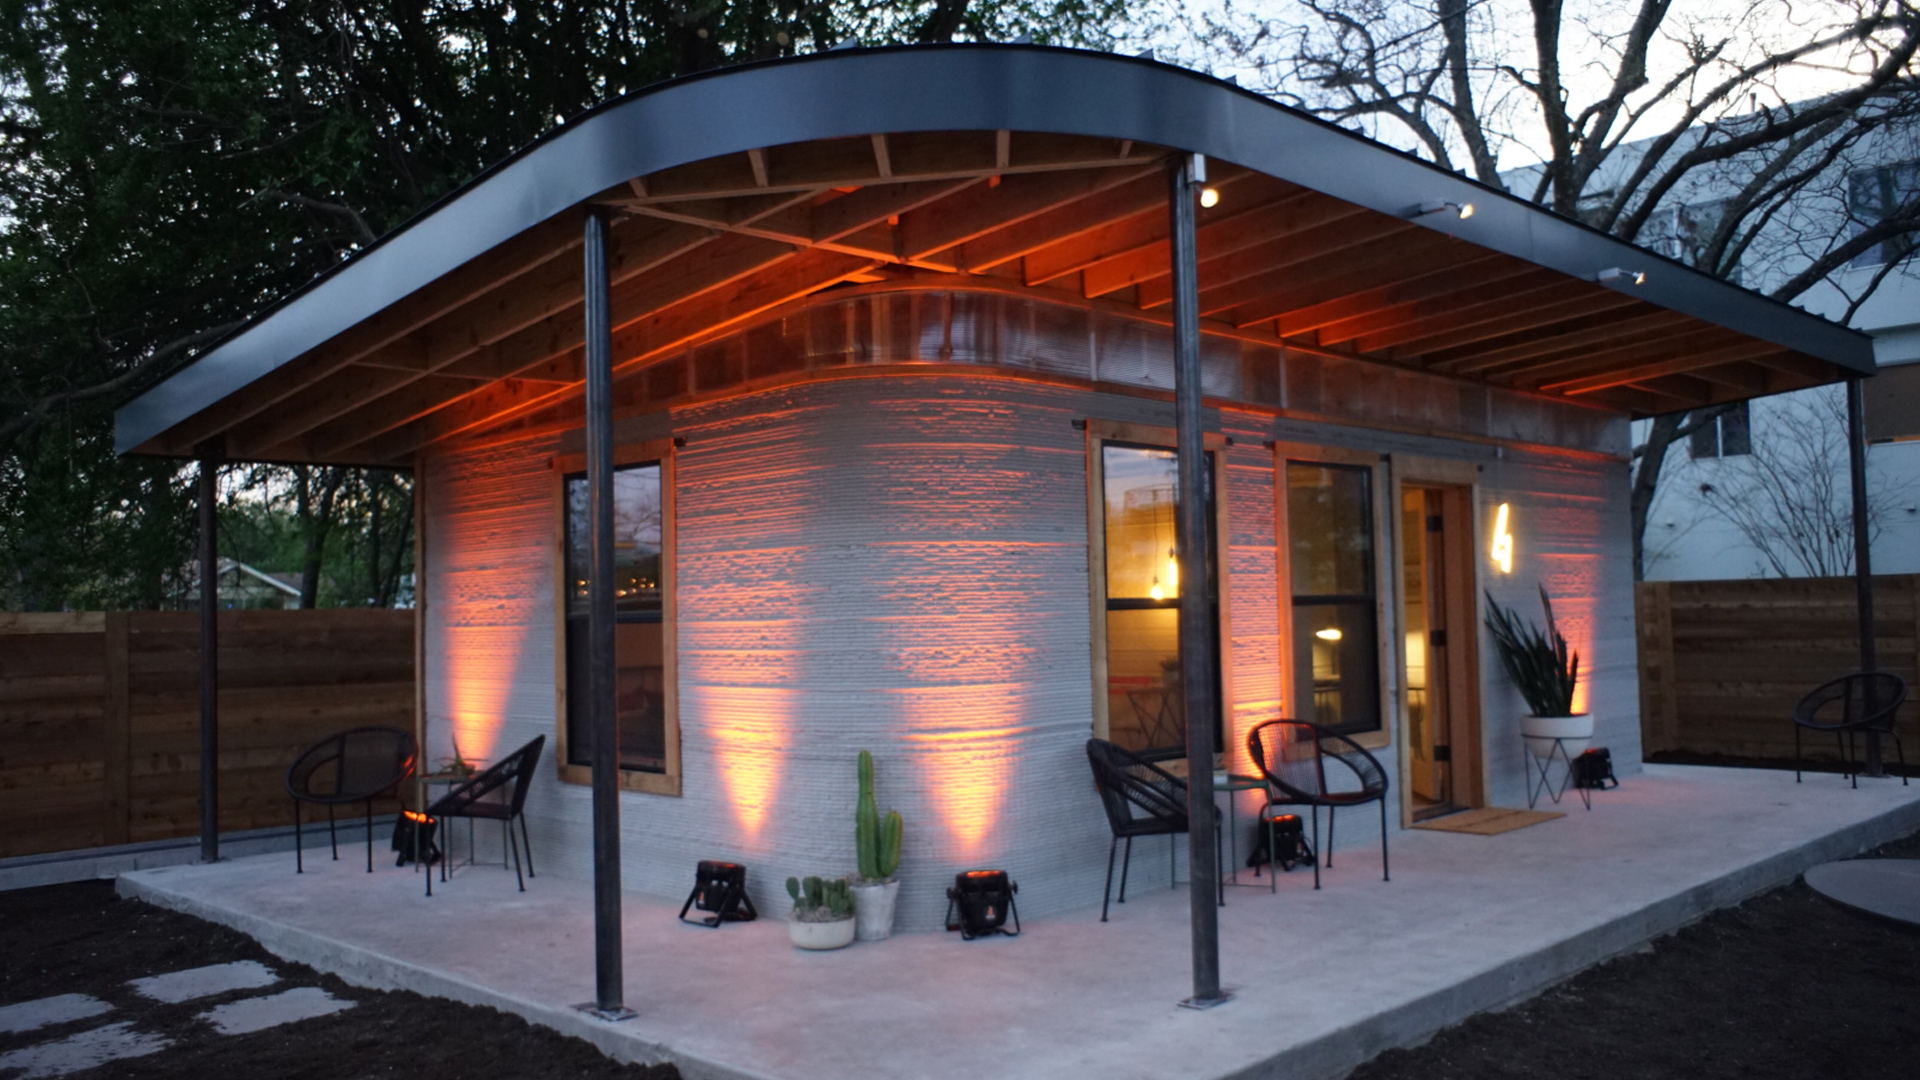 3d printed home built in 24 hours could tackle homelessness for Home 3d